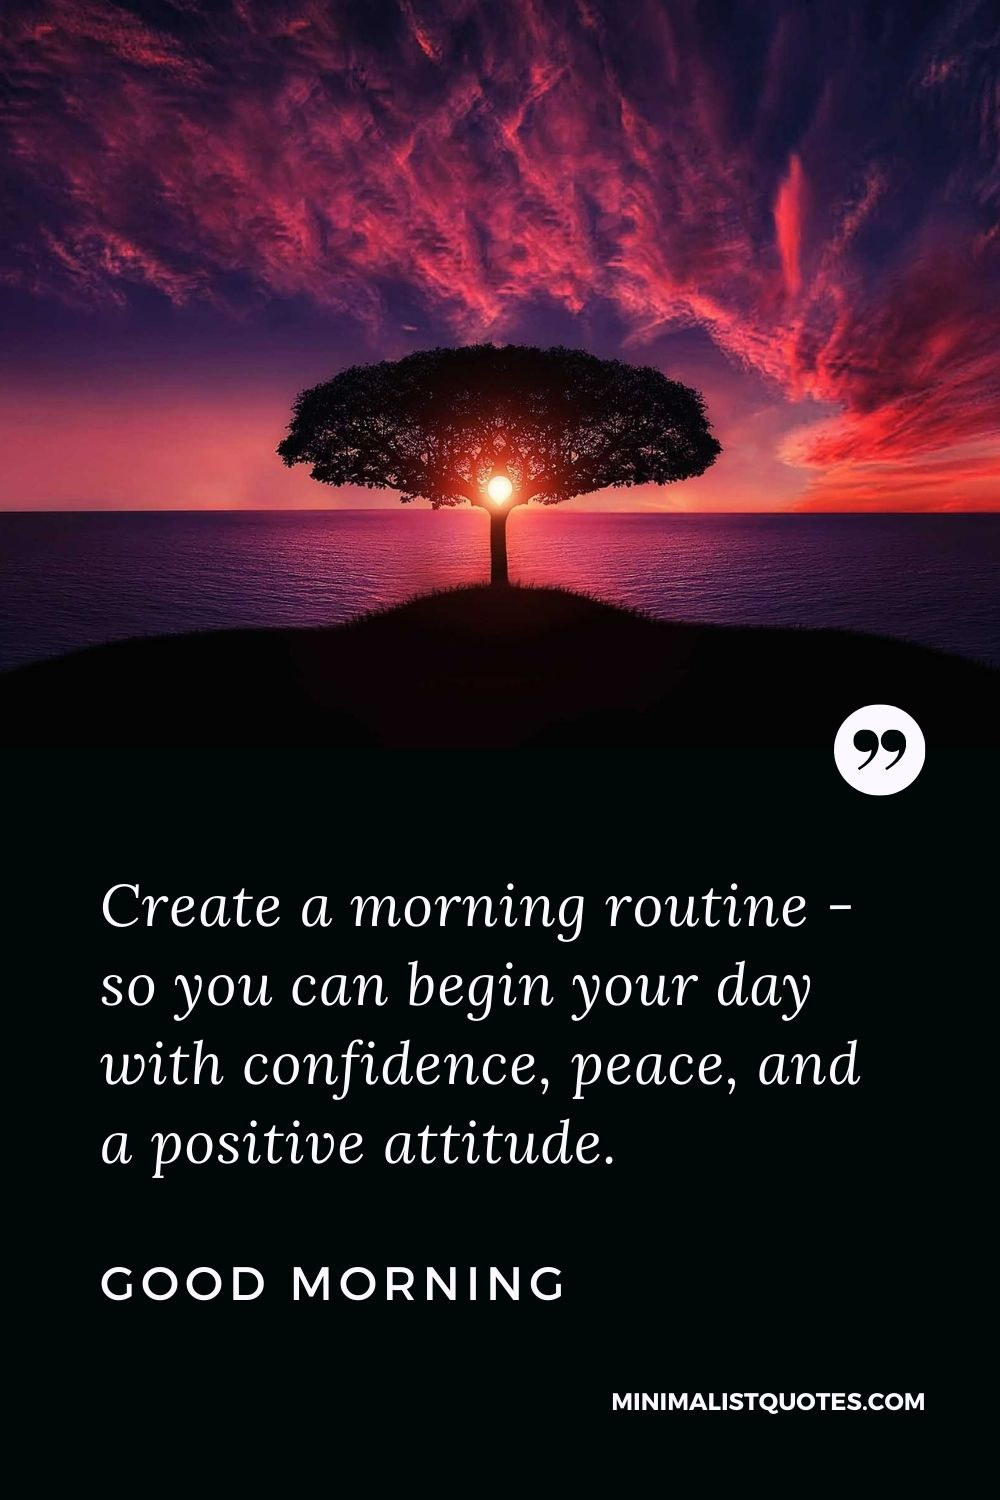 Good Morning Wish, Quote & Message wth Image: Create a morning routine - so you can begin your day with confidence, peace, and a positive attitude. Good Morning!